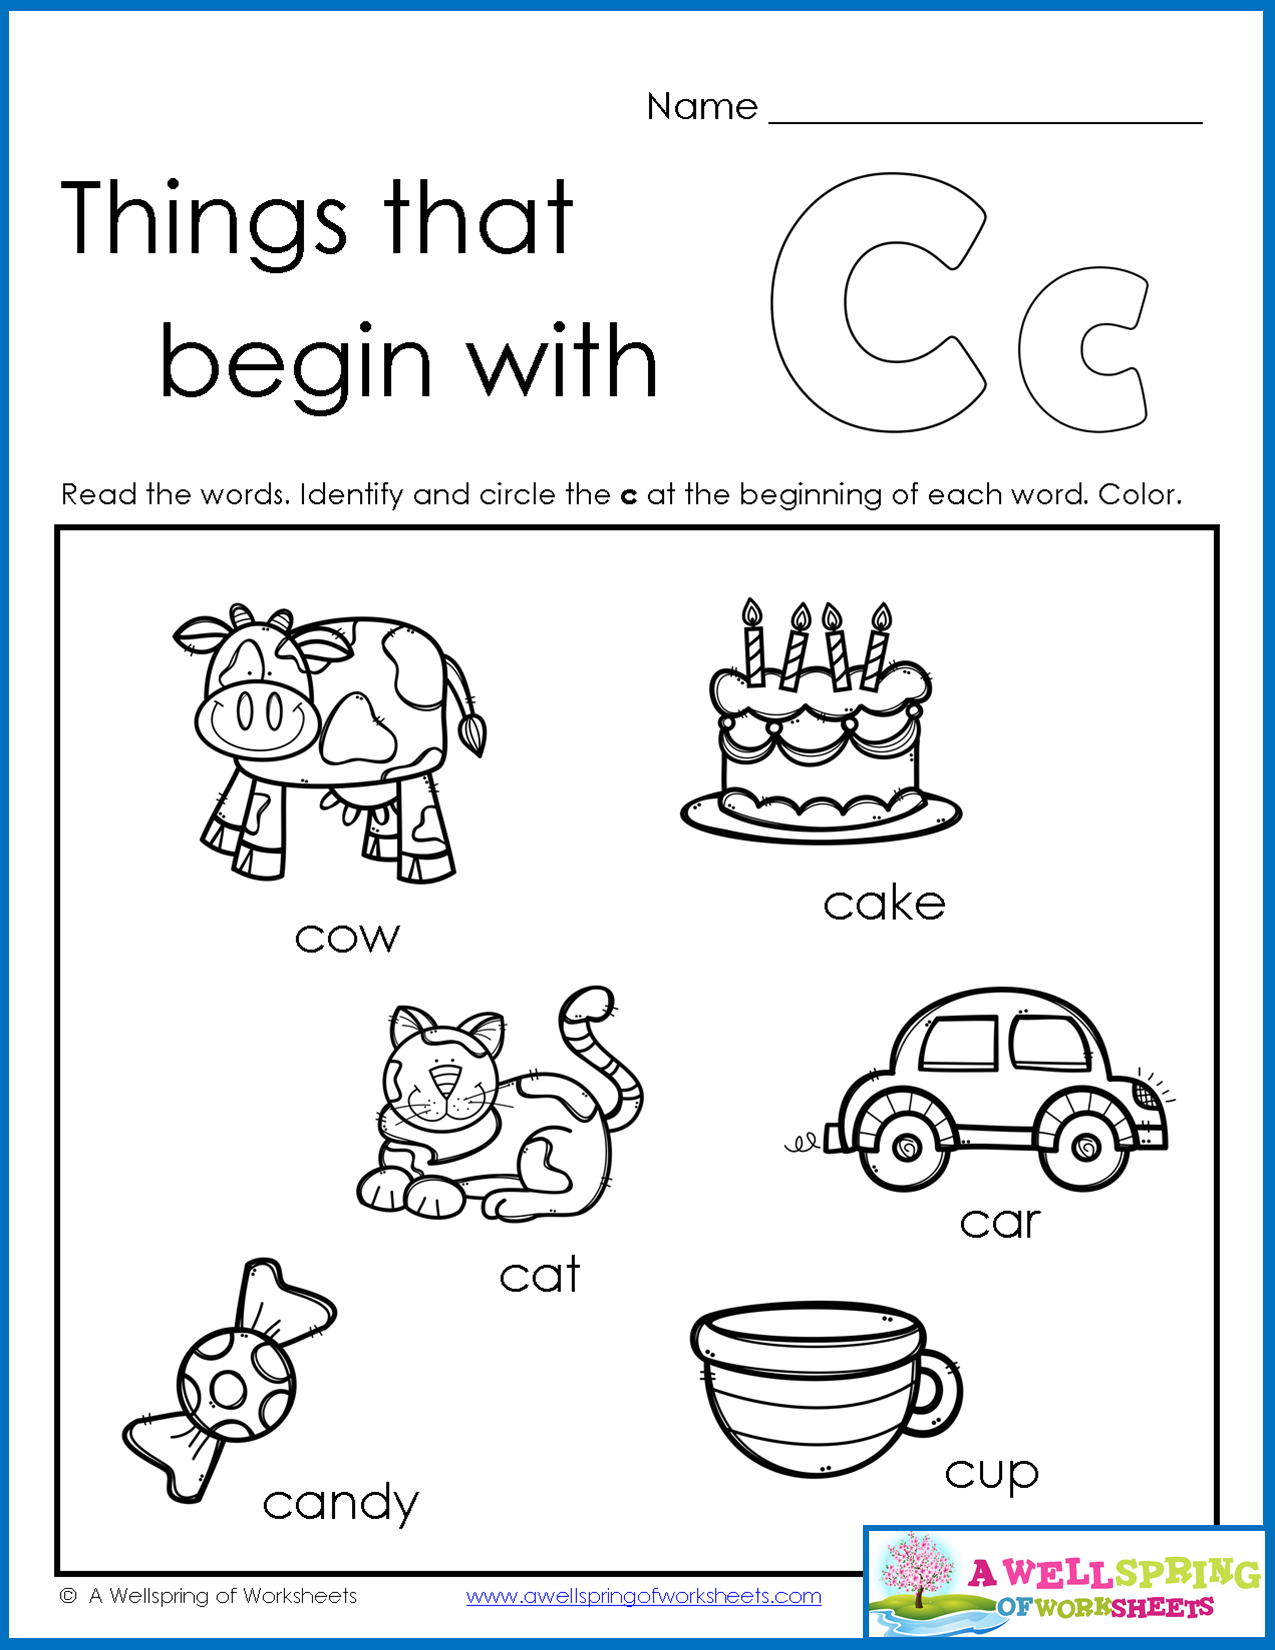 hight resolution of Things that Begin with A-Z Worksheets   Alphabet worksheets preschool